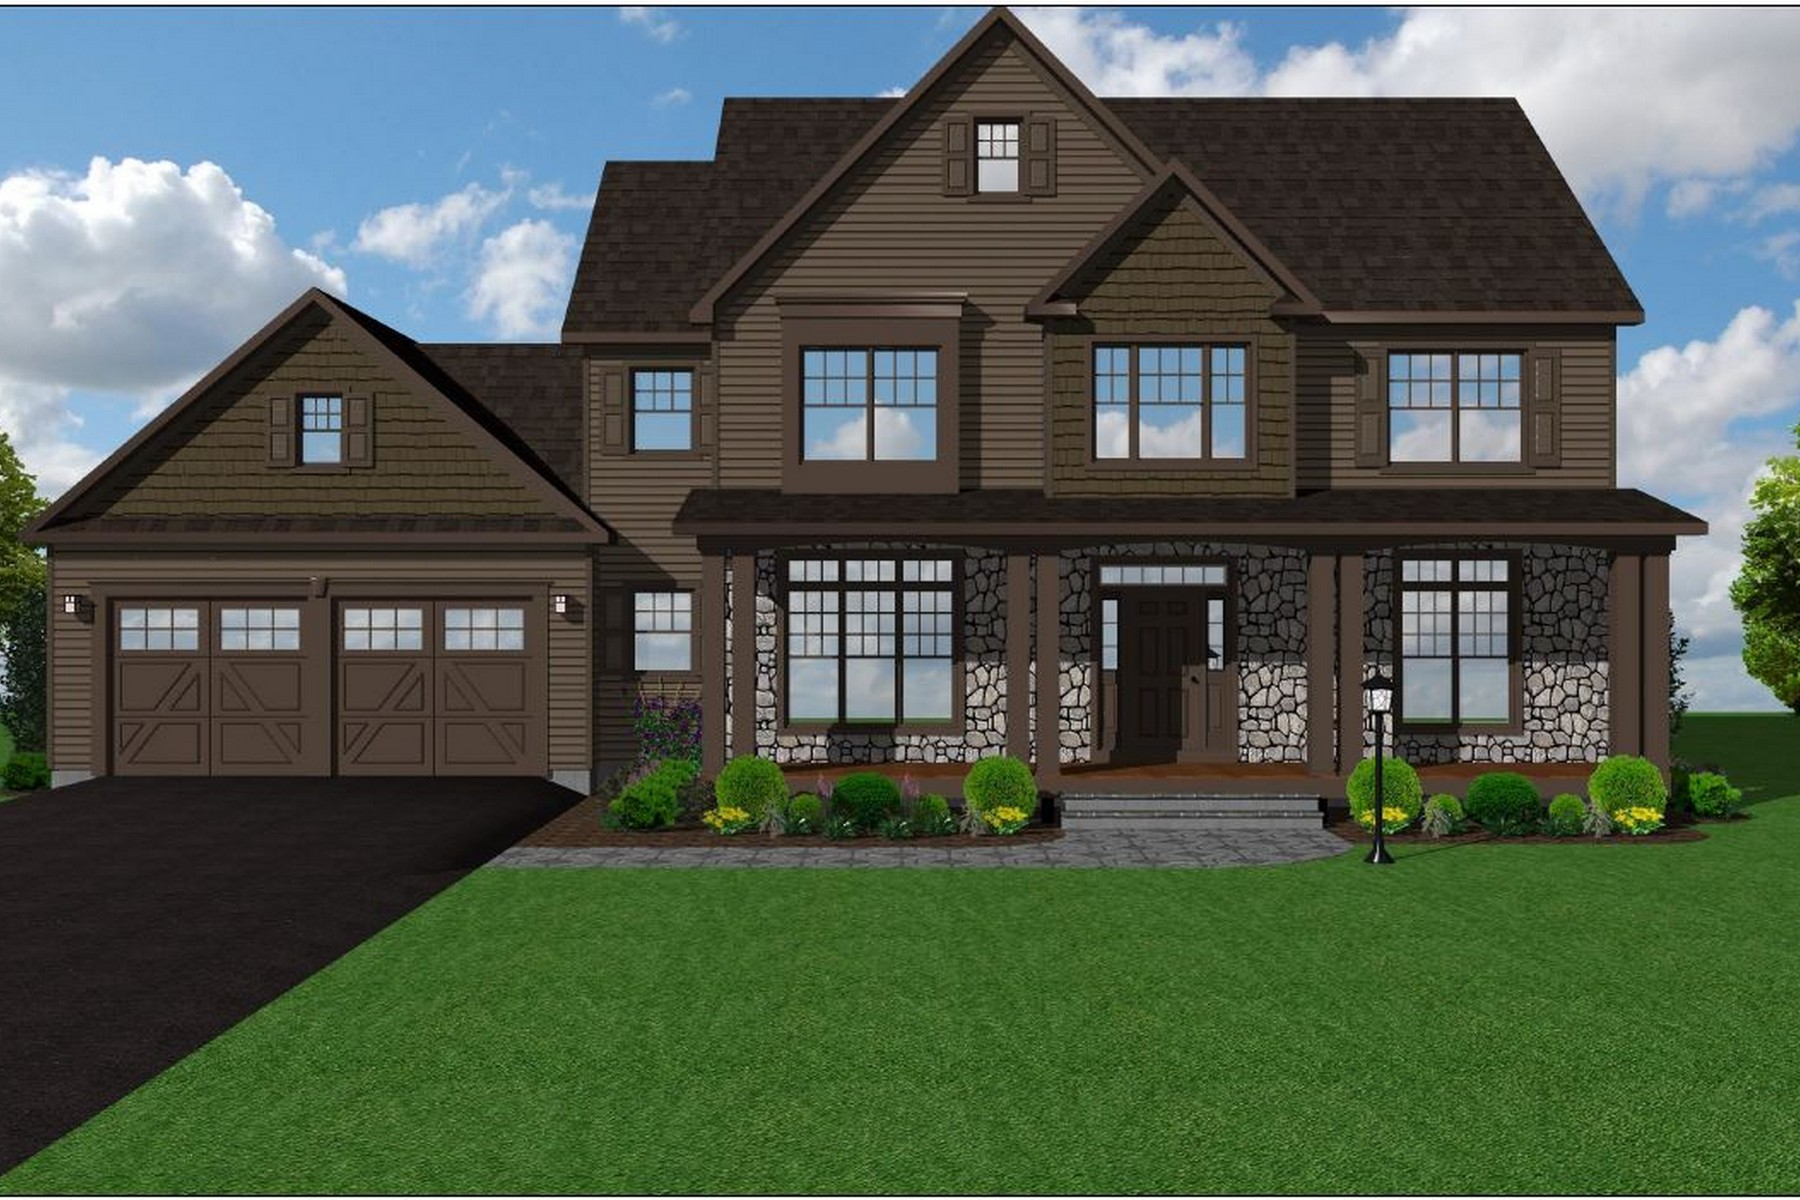 Villa per Vendita alle ore Preservation Acres New Construction Dover Model Lot 8 Preservation Lane Westborough, Massachusetts, 01581 Stati Uniti